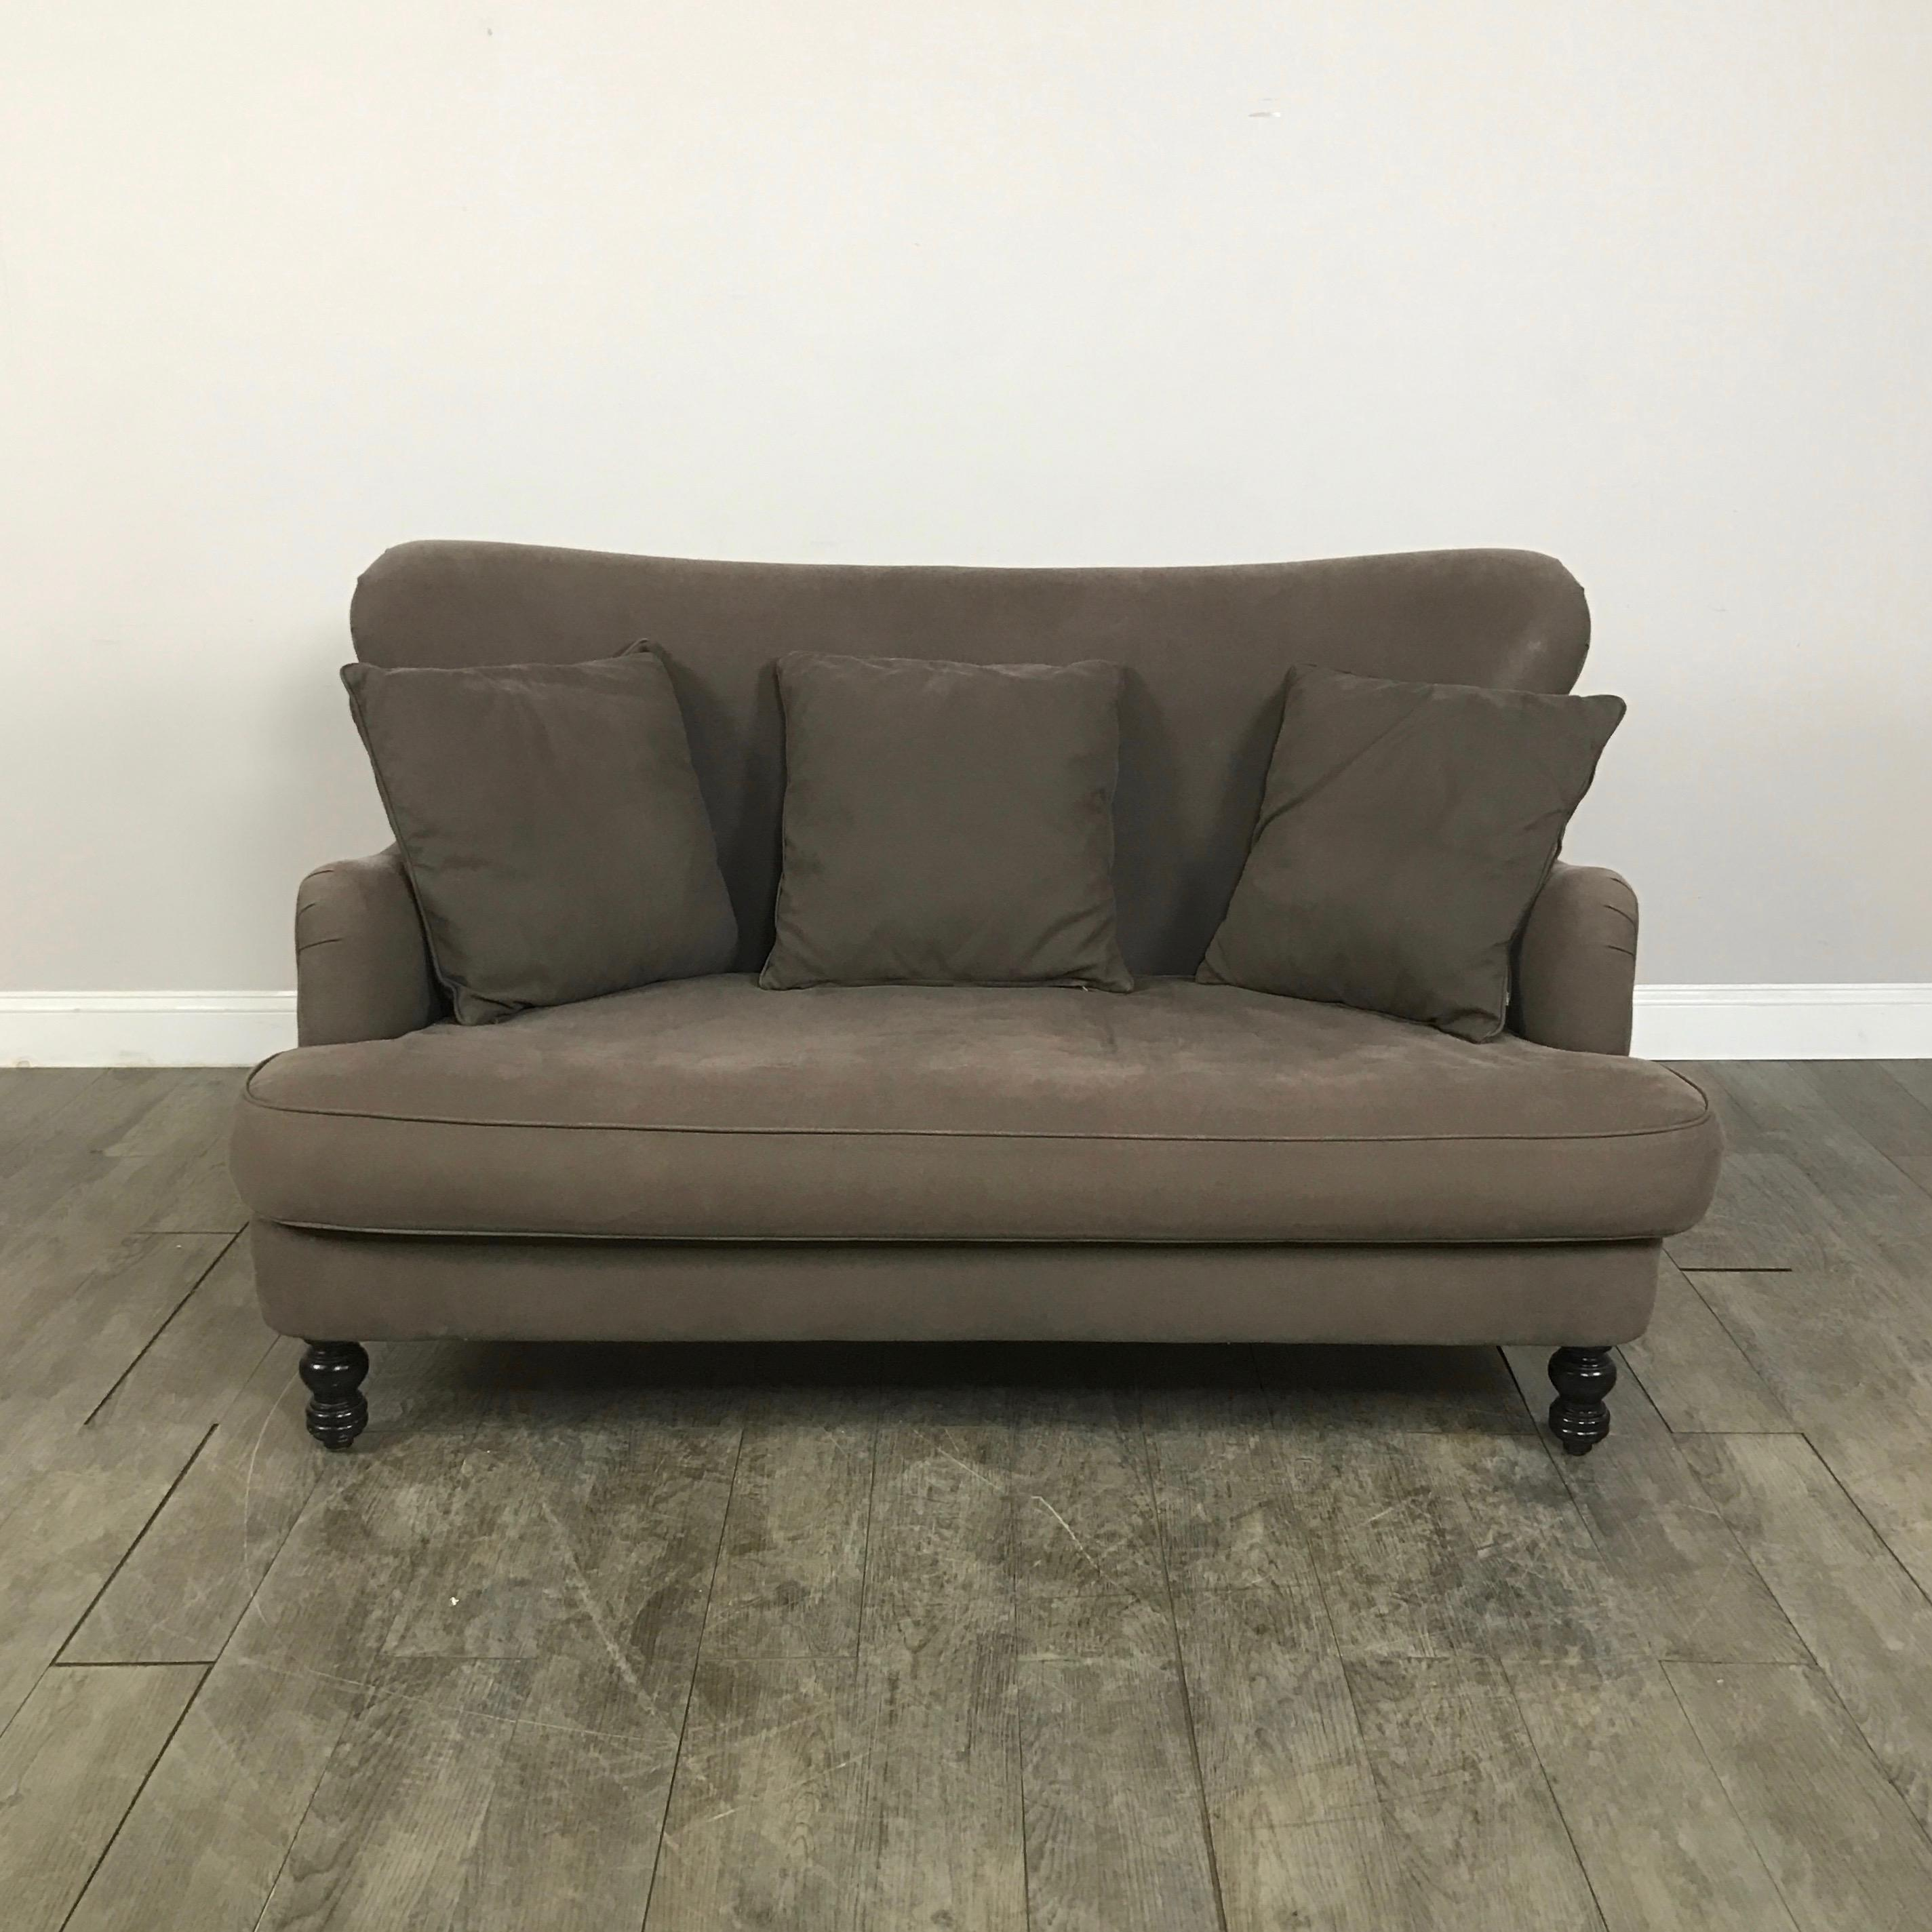 image of cisco brothers curved loveseat sofa - Curved Loveseat